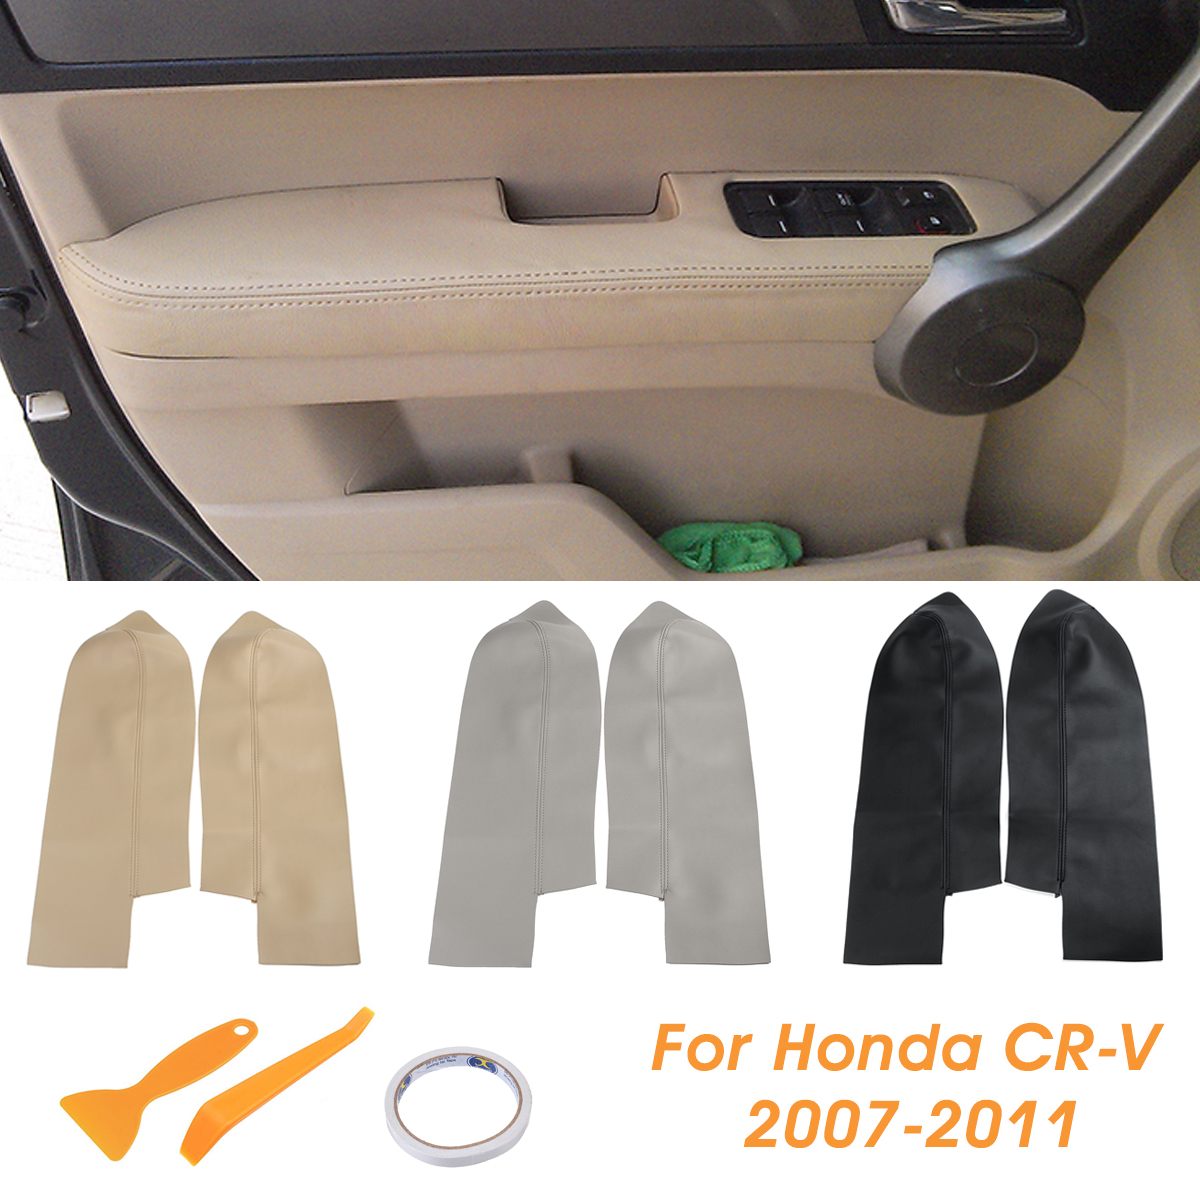 Pair Car Leather Front Door Panels Armrest Cover For <font><b>Honda</b></font> CRV 2007 2008 2009 2010 2011 2012 Black/Beige/Grey image